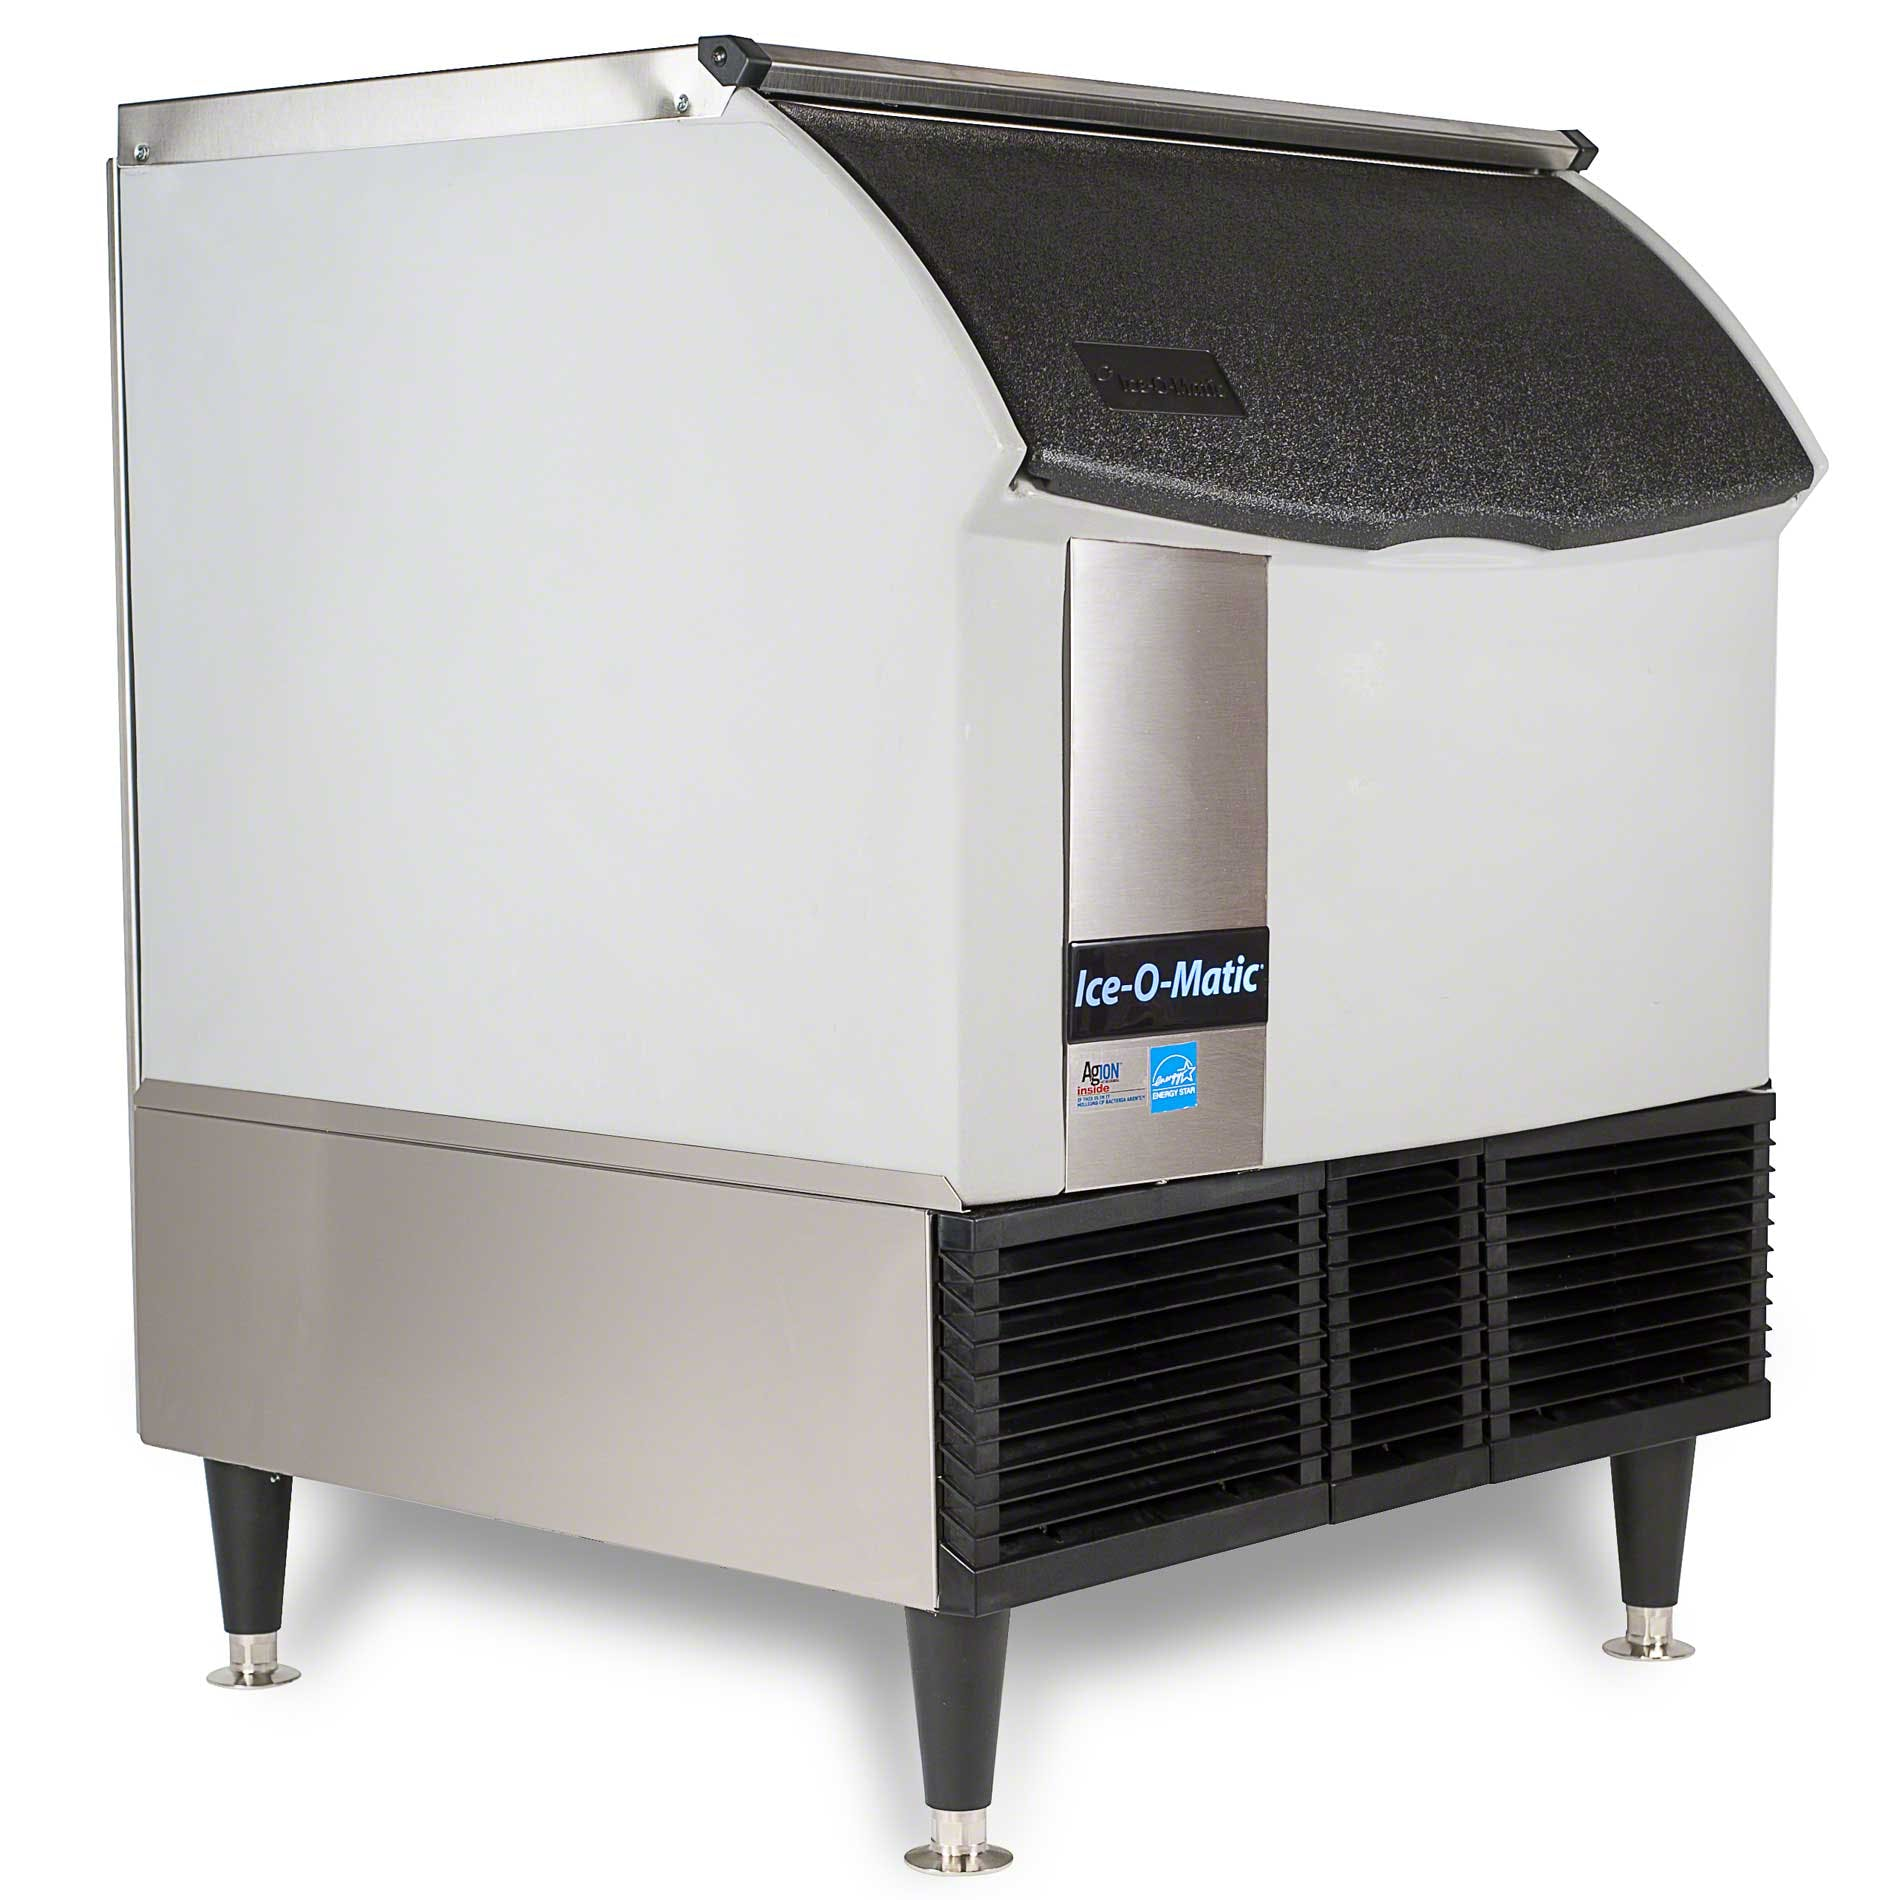 Ice-O-Matic - ICEU300HA 309 lb Self-Contained Half Cube Ice Machine Ice machine sold by Food Service Warehouse